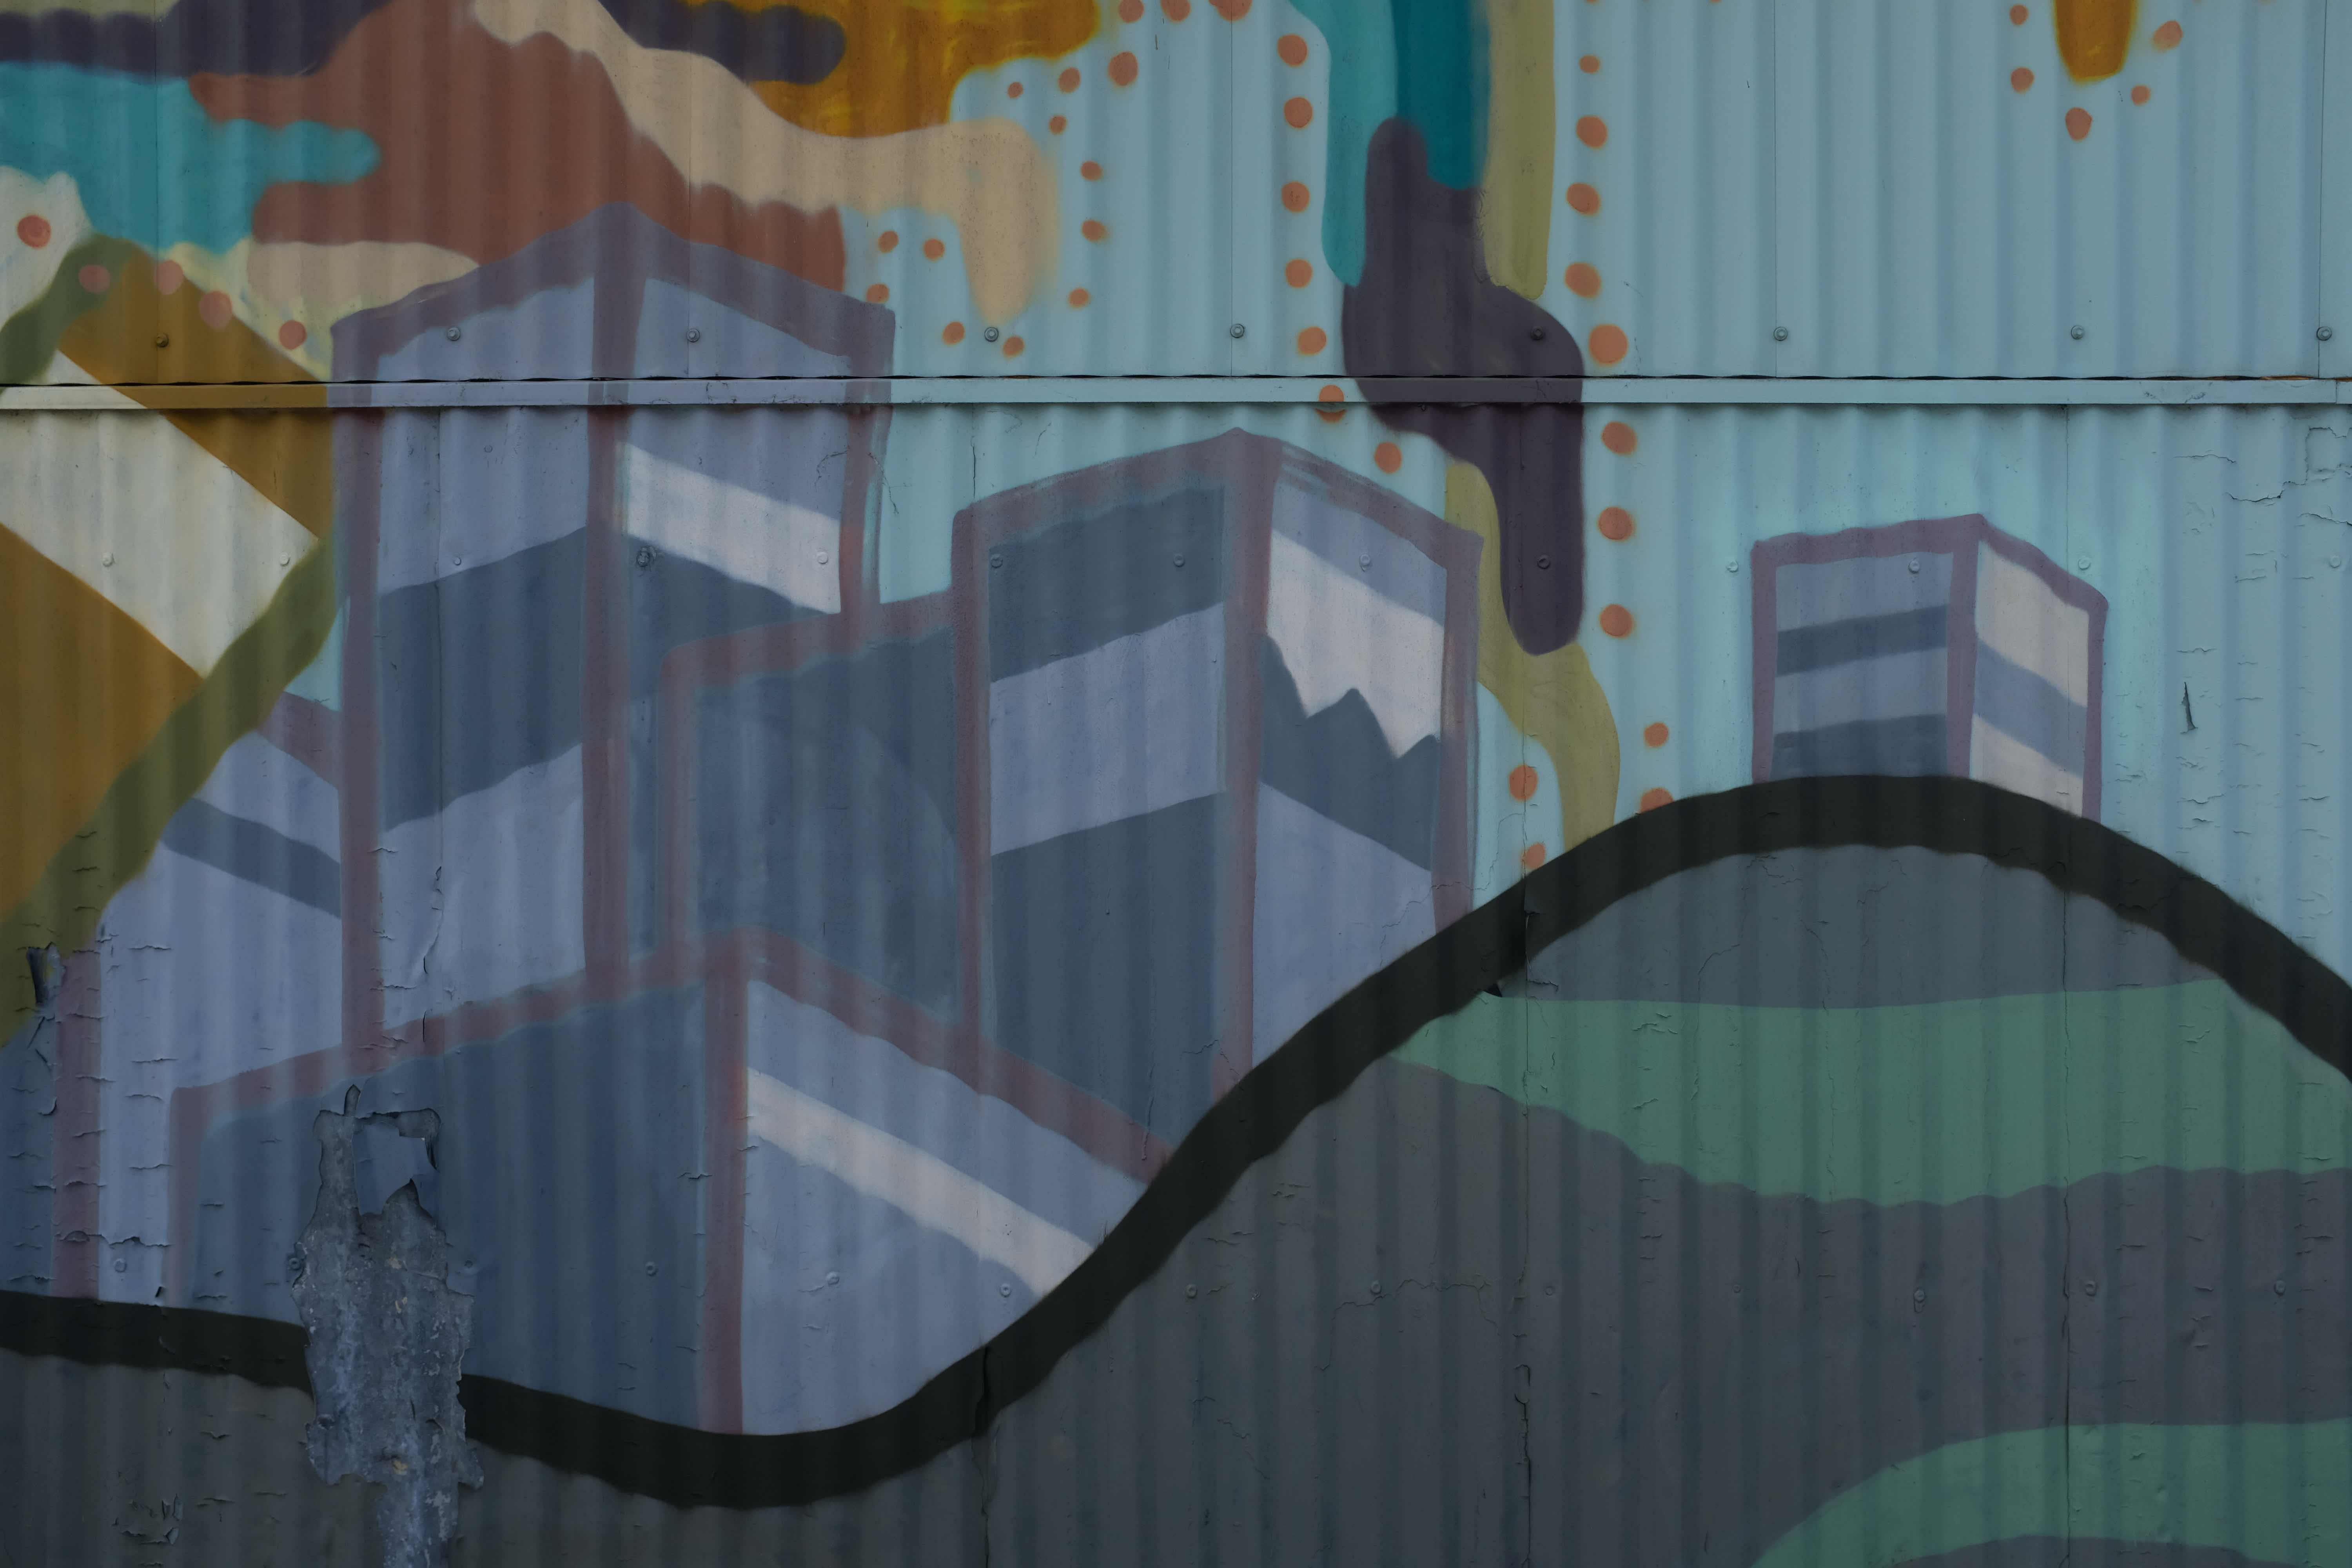 Oakland mural on aluminum paneling depicting a cityscape